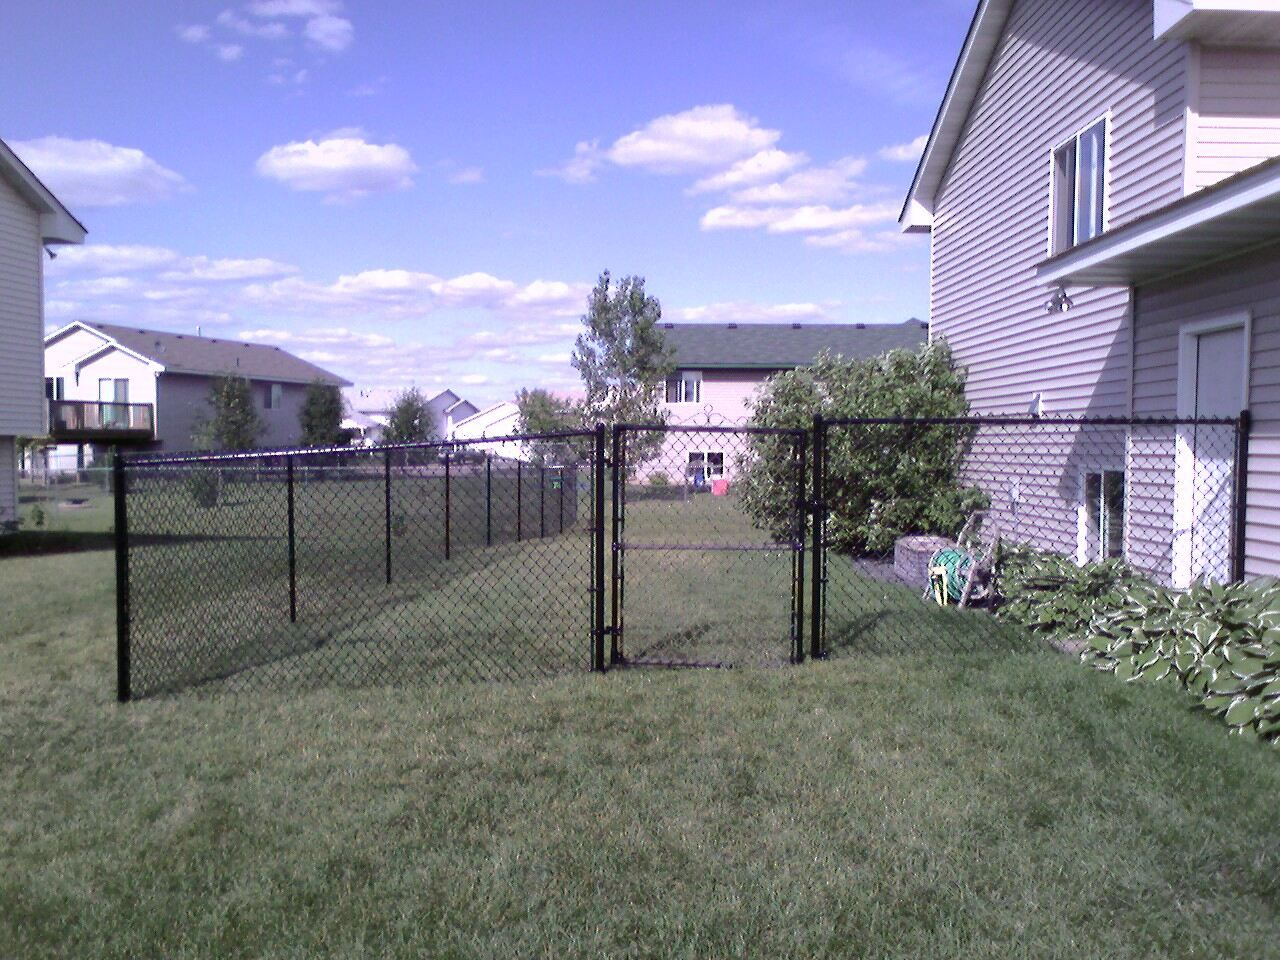 For my back yard a 4 black vinyl chain link fence seems